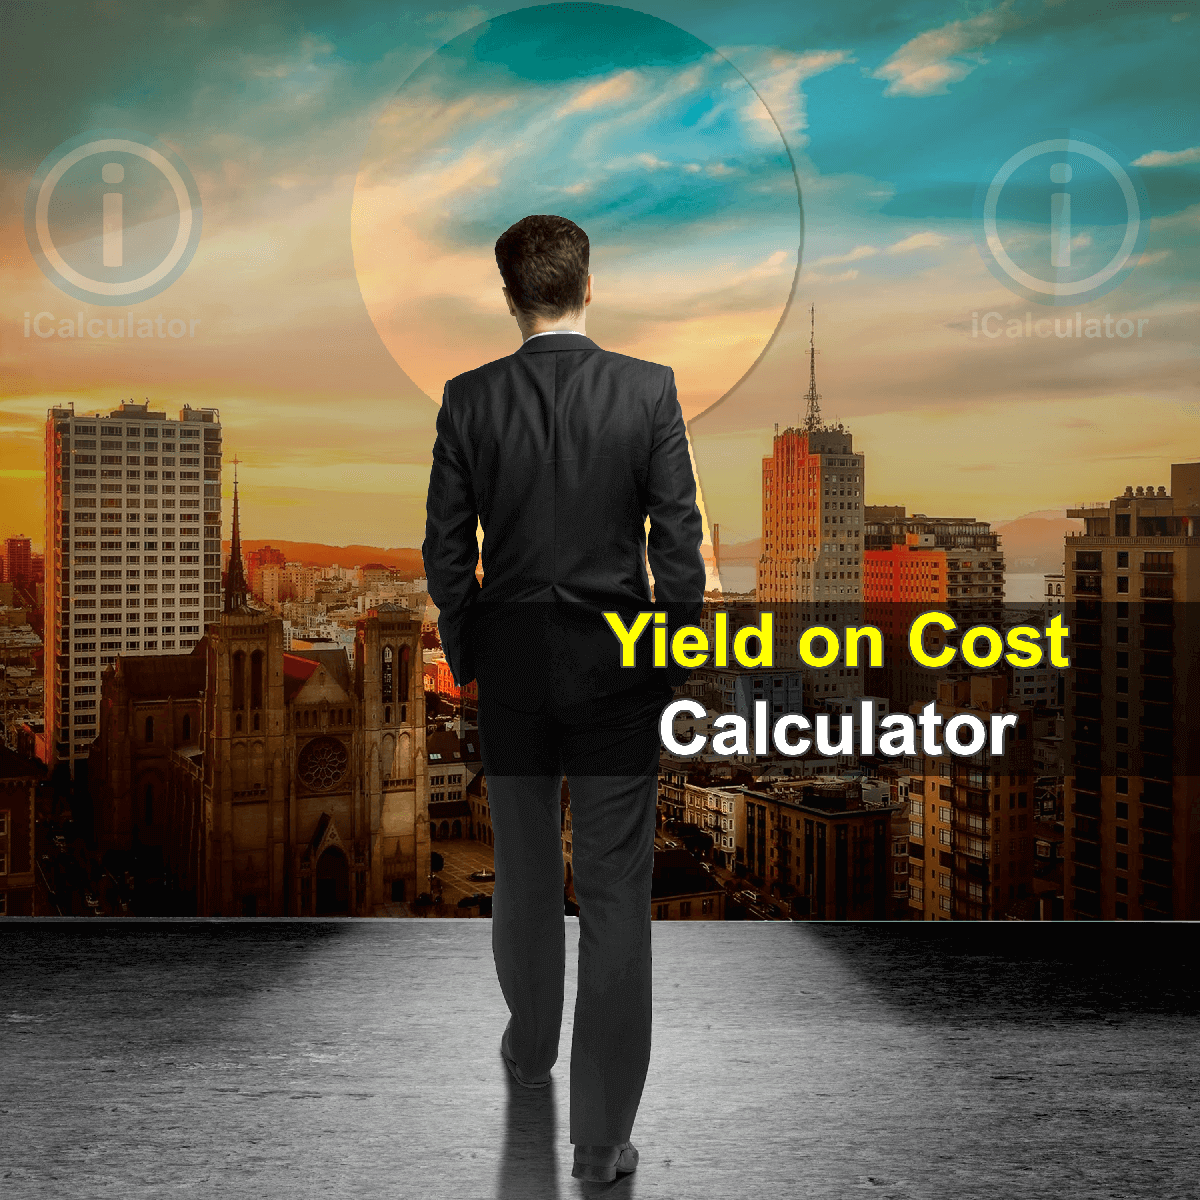 Yield on Cost Calculator. This image provides details of how to calculate Yield on Cost using a calculator and notepad. By using the Yield on Cost Ratio formula, the Yield on Cost Calculator provides a true calculation of the profitability of your investment portfolio